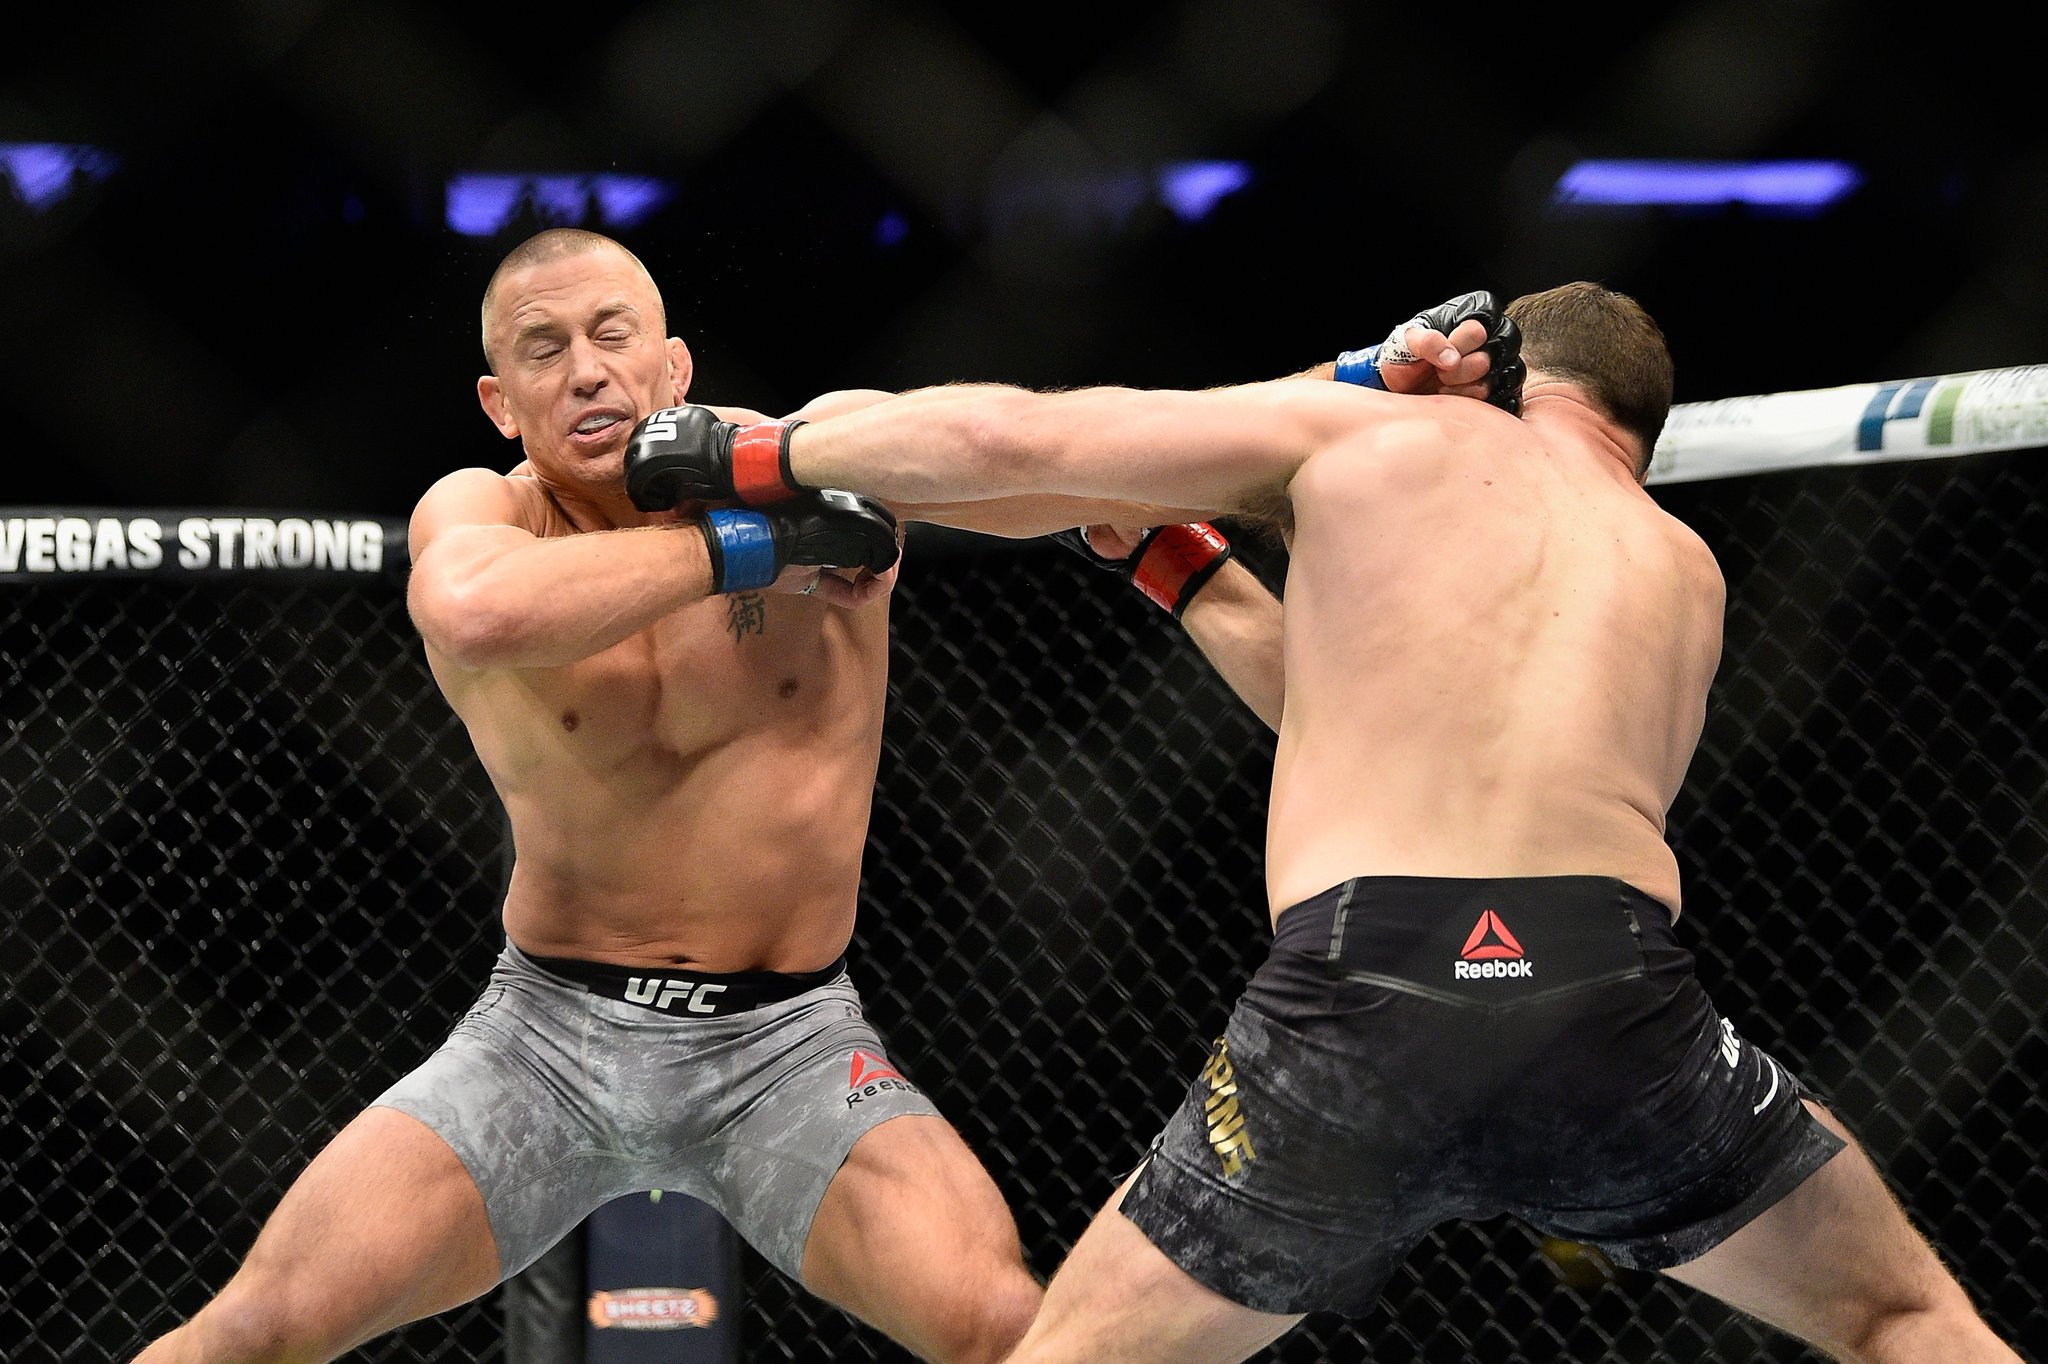 RT @UFCEurope: We go into the third round! How are you scoring Michael Bisping vs. Georges St-Pierre at #UFC217? https://t.co/2pAWbrzopY